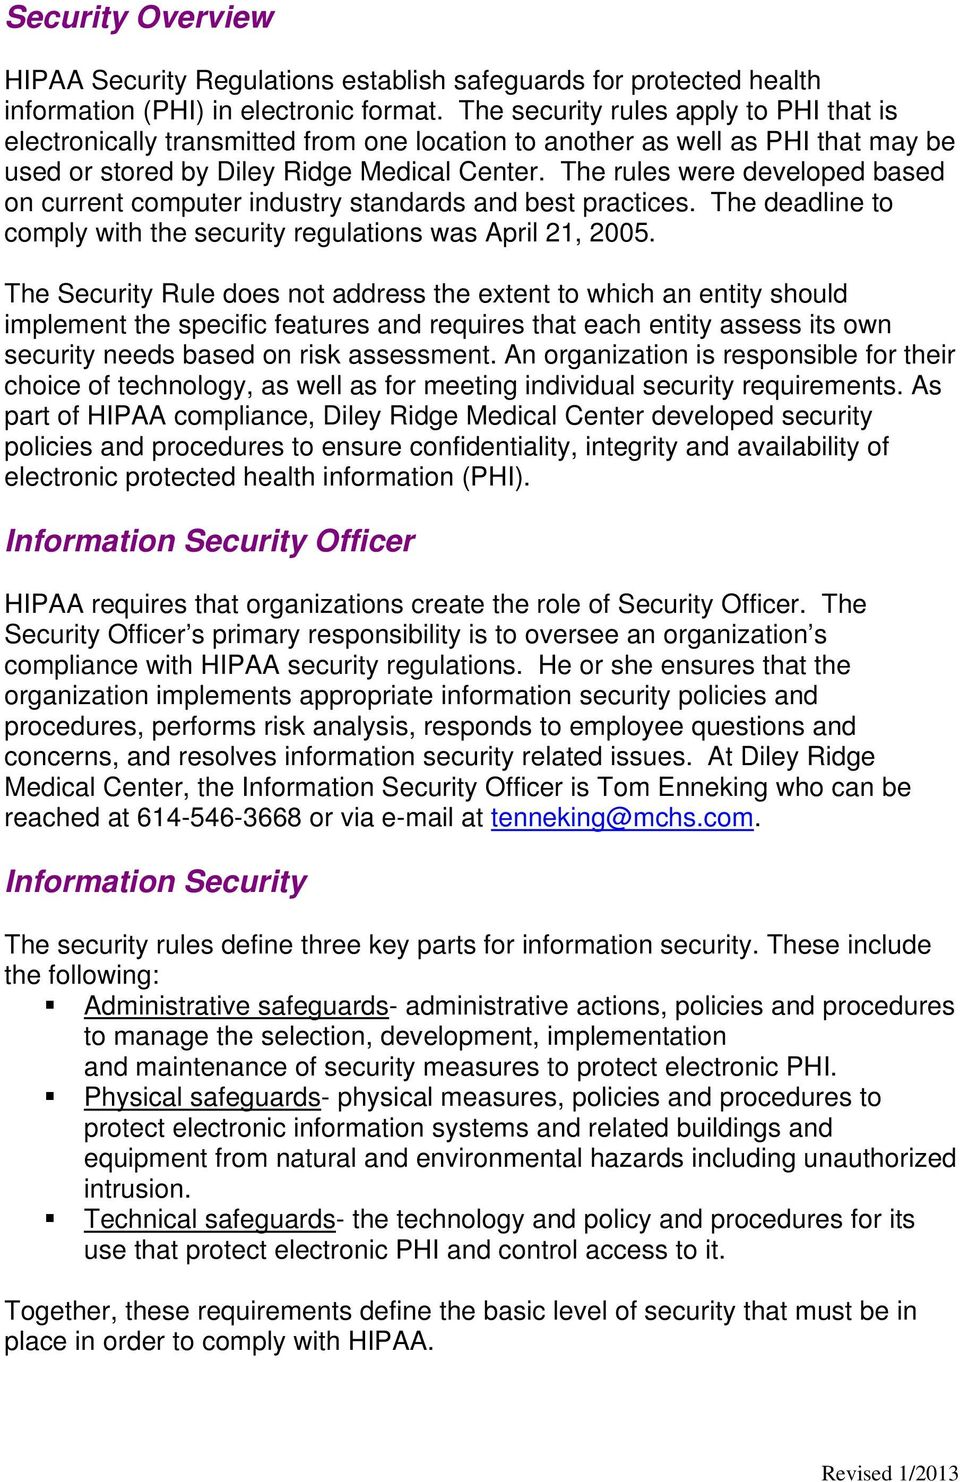 The rules were developed based on current computer industry standards and best practices. The deadline to comply with the security regulations was April 21, 2005.